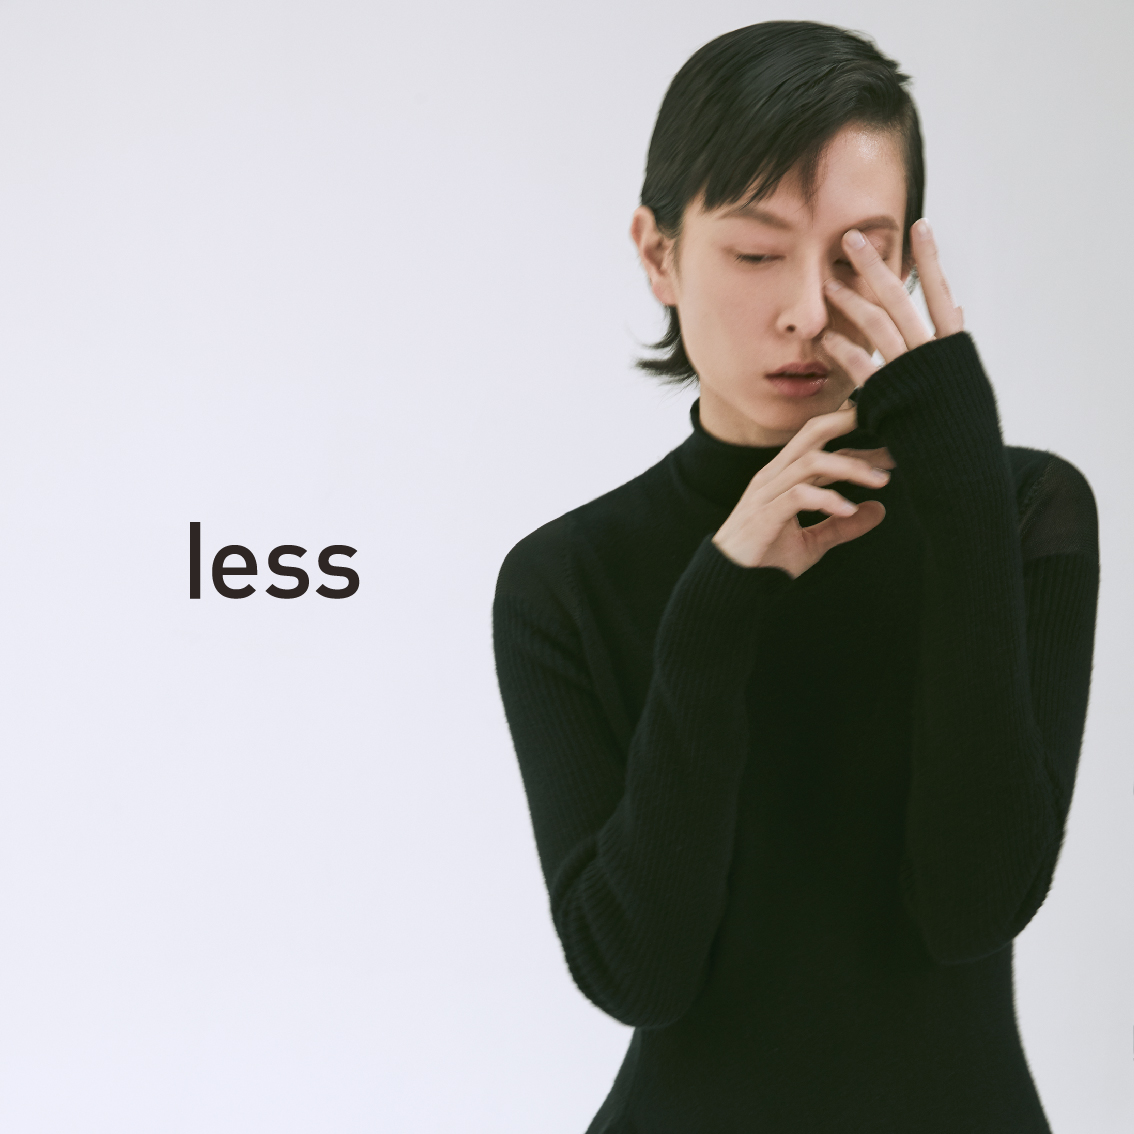 """/ less - The Group acquired """"less""""in 2011, a new office ladies' clothing brand, promoting """"less is more"""" as its core idea about life, with its origins in the design philosophy of world-famous architect Ludwig Mies Van der Rohe. As its slogan suggests, this brand represents a new generation of office ladies who are independent, rational and keen on a delicate but simple lifestyle. The brand's design concepts are continually based on the goals of """"Simplified, Refined, Independent, Rational"""", releasing products of high quality and services as well as building a group of fashionable metropolitan women who are capable, knowledgeable, restrained and generous. These designs appeal to authentic, independent, and emotive patterns of conduct that emerge in the workplace, and have received the endorsements of numerous prominent women."""